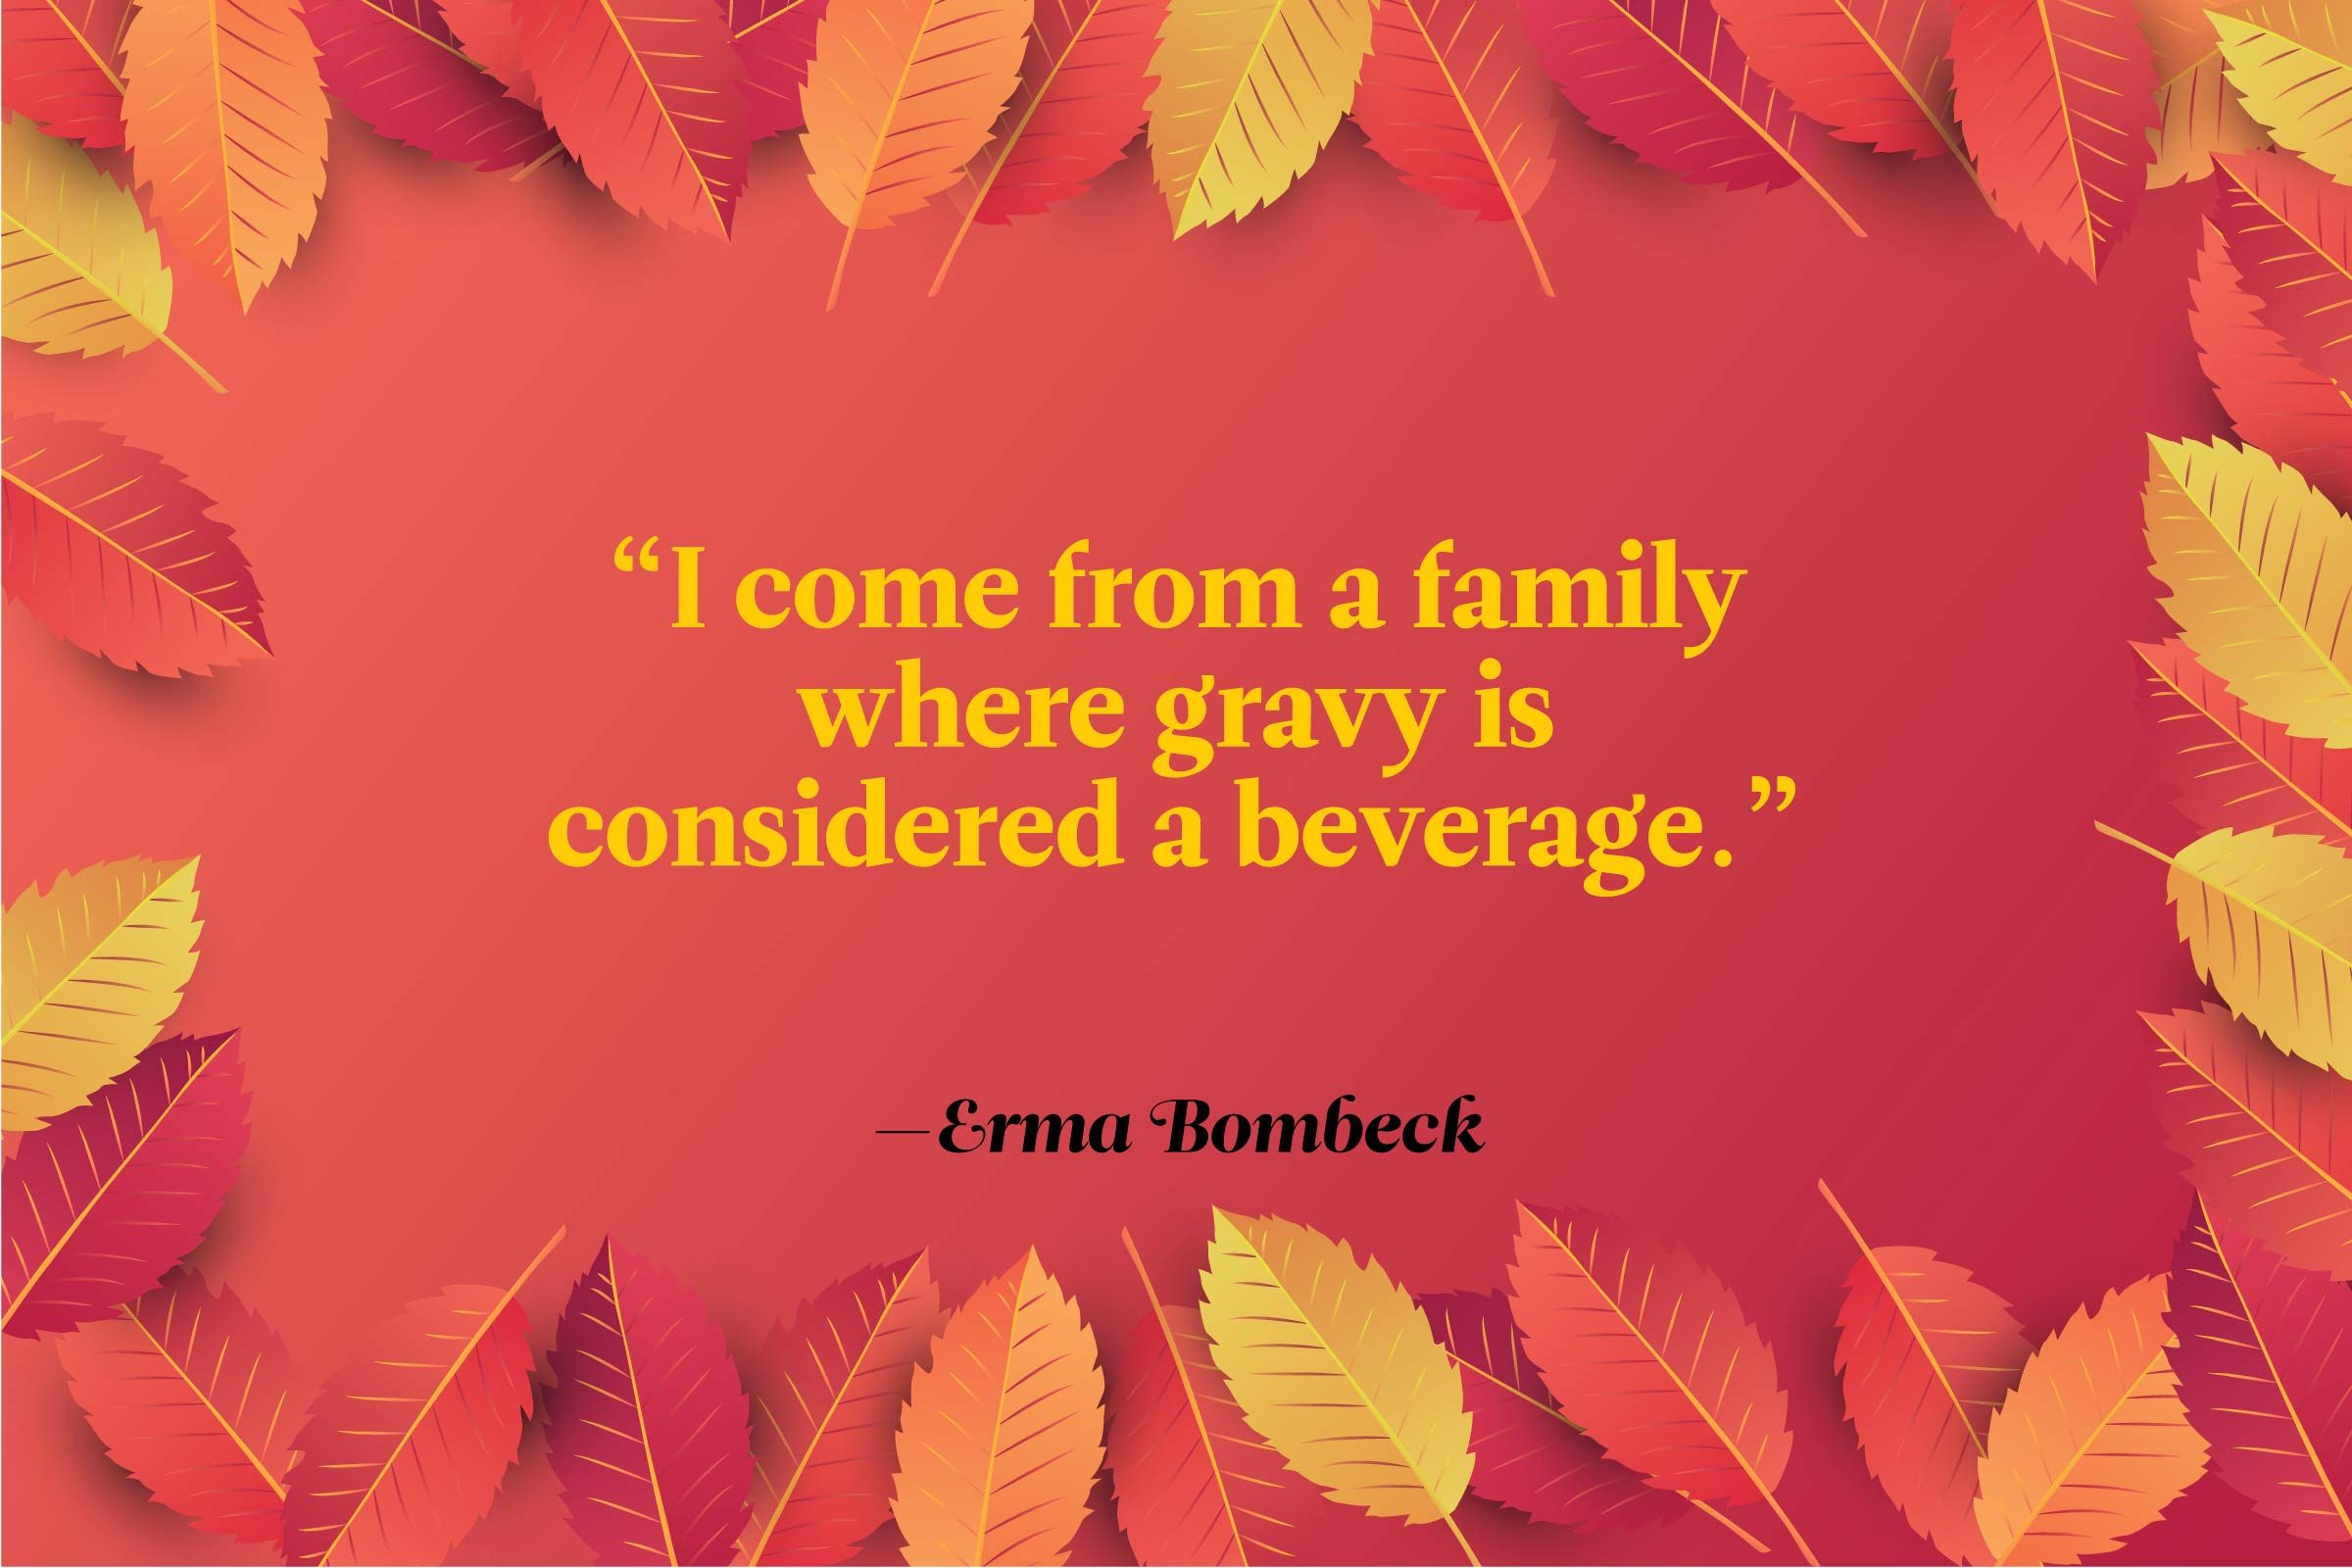 Funny Thanksgiving Quotes To Share At The Table